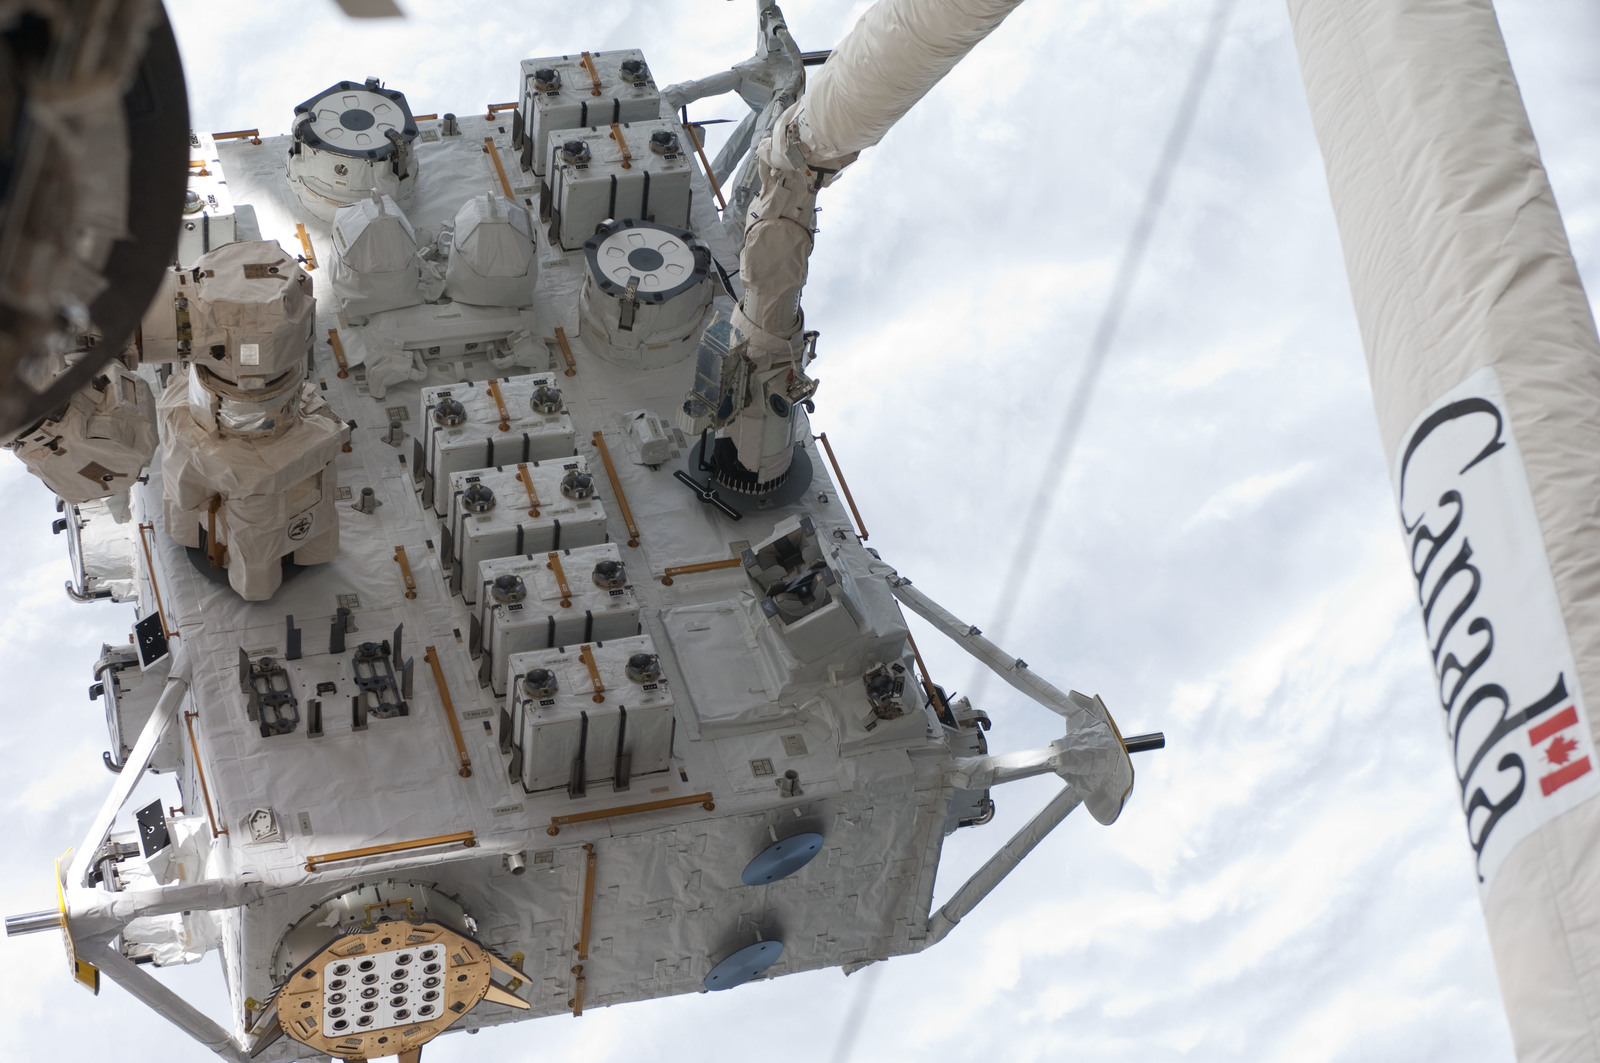 S127E006838 - STS-127 - SRMS moves JEF during EVA-1 on STS-127 / Expedition 20 Joint Operations